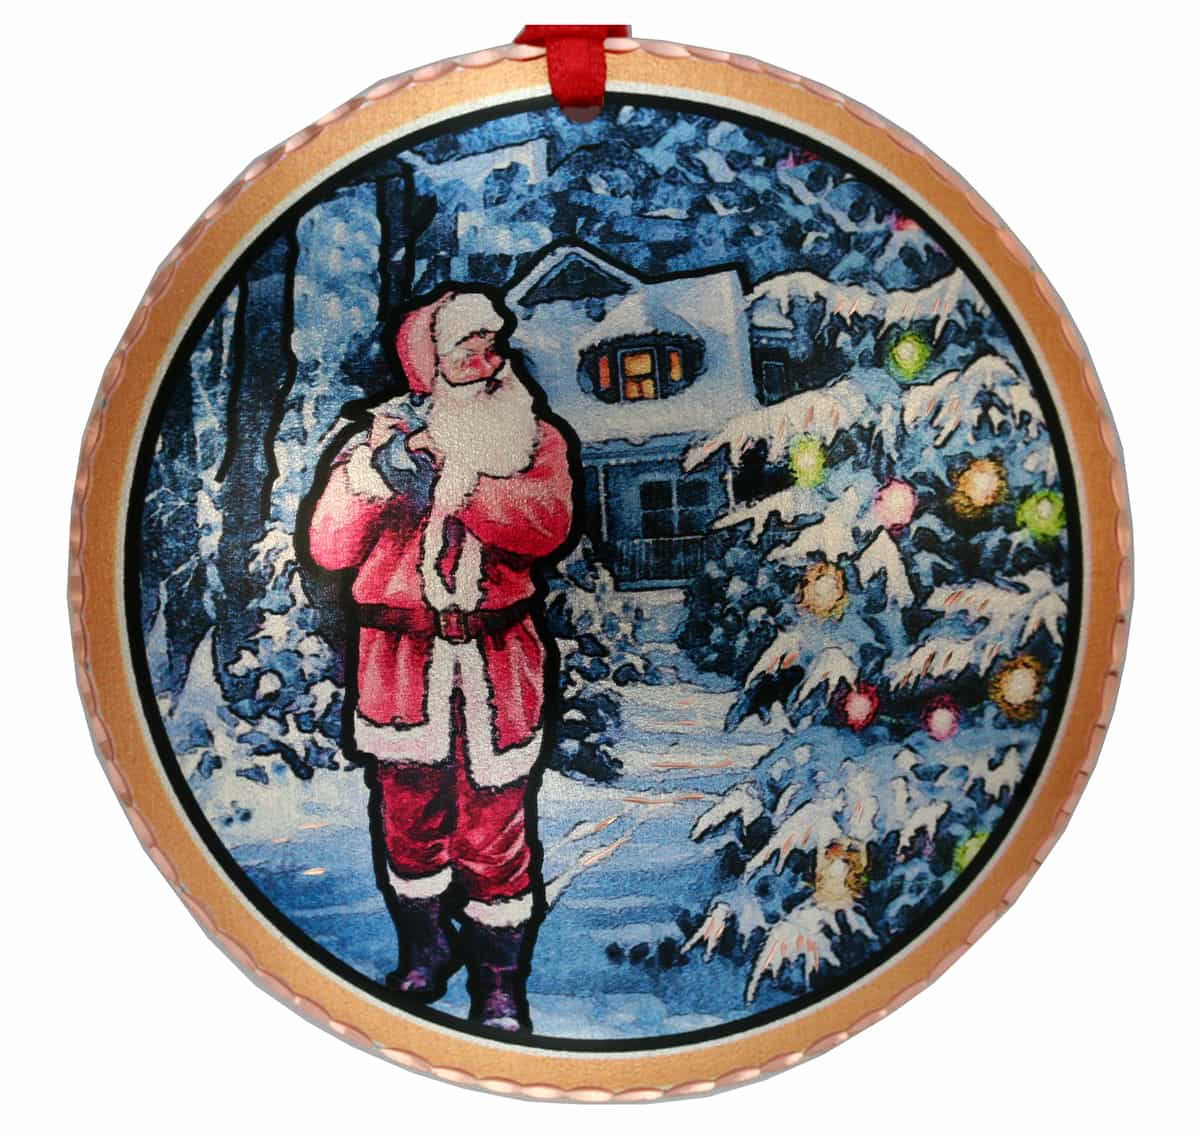 Colorful Handmade Santa Delivering Gifts Christmas Tree Ornament